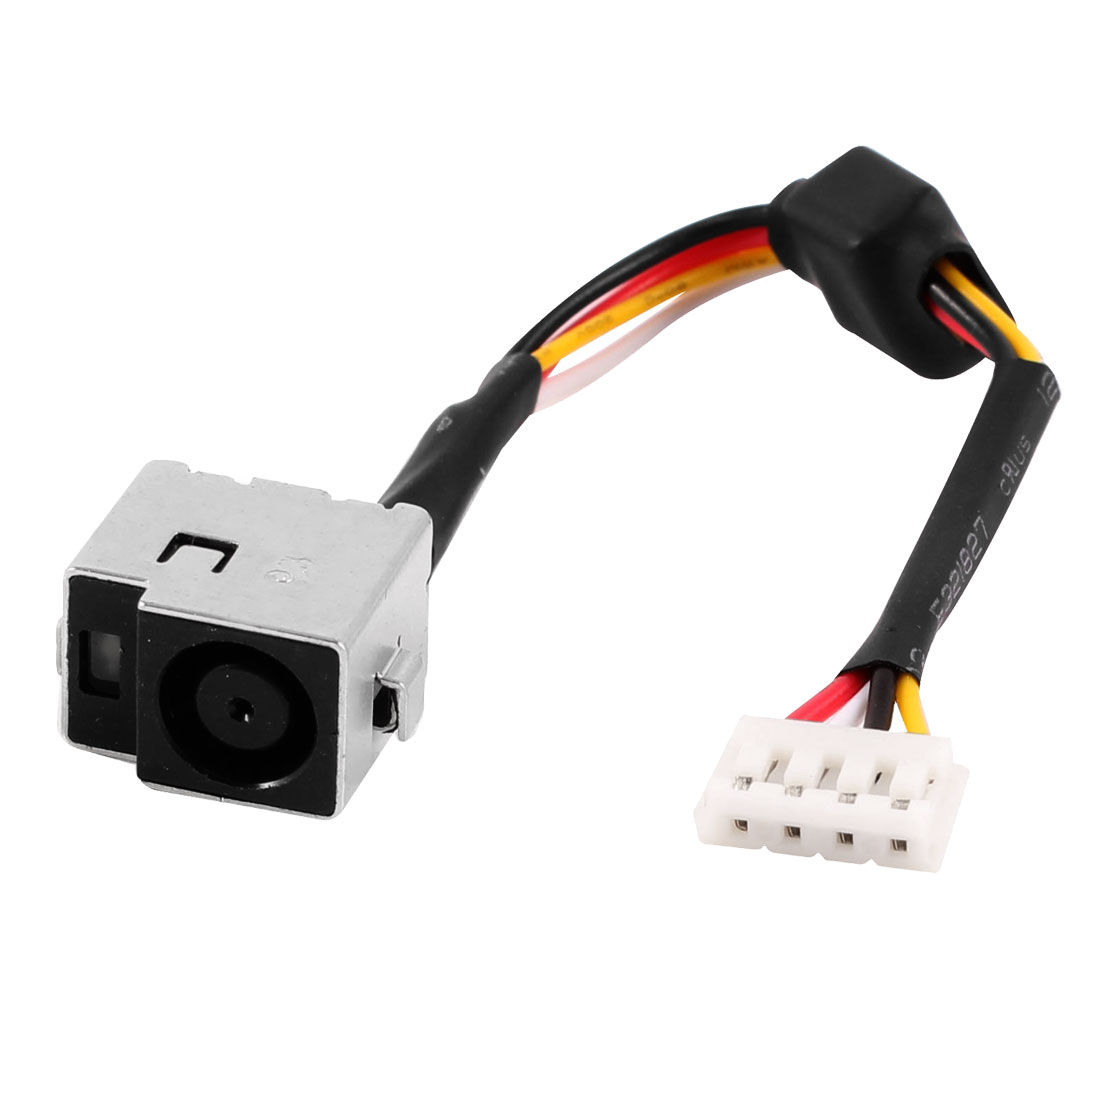 PJ118 DC Jack Power Socket w 4 Pins Cable for HP DV3 Laptops